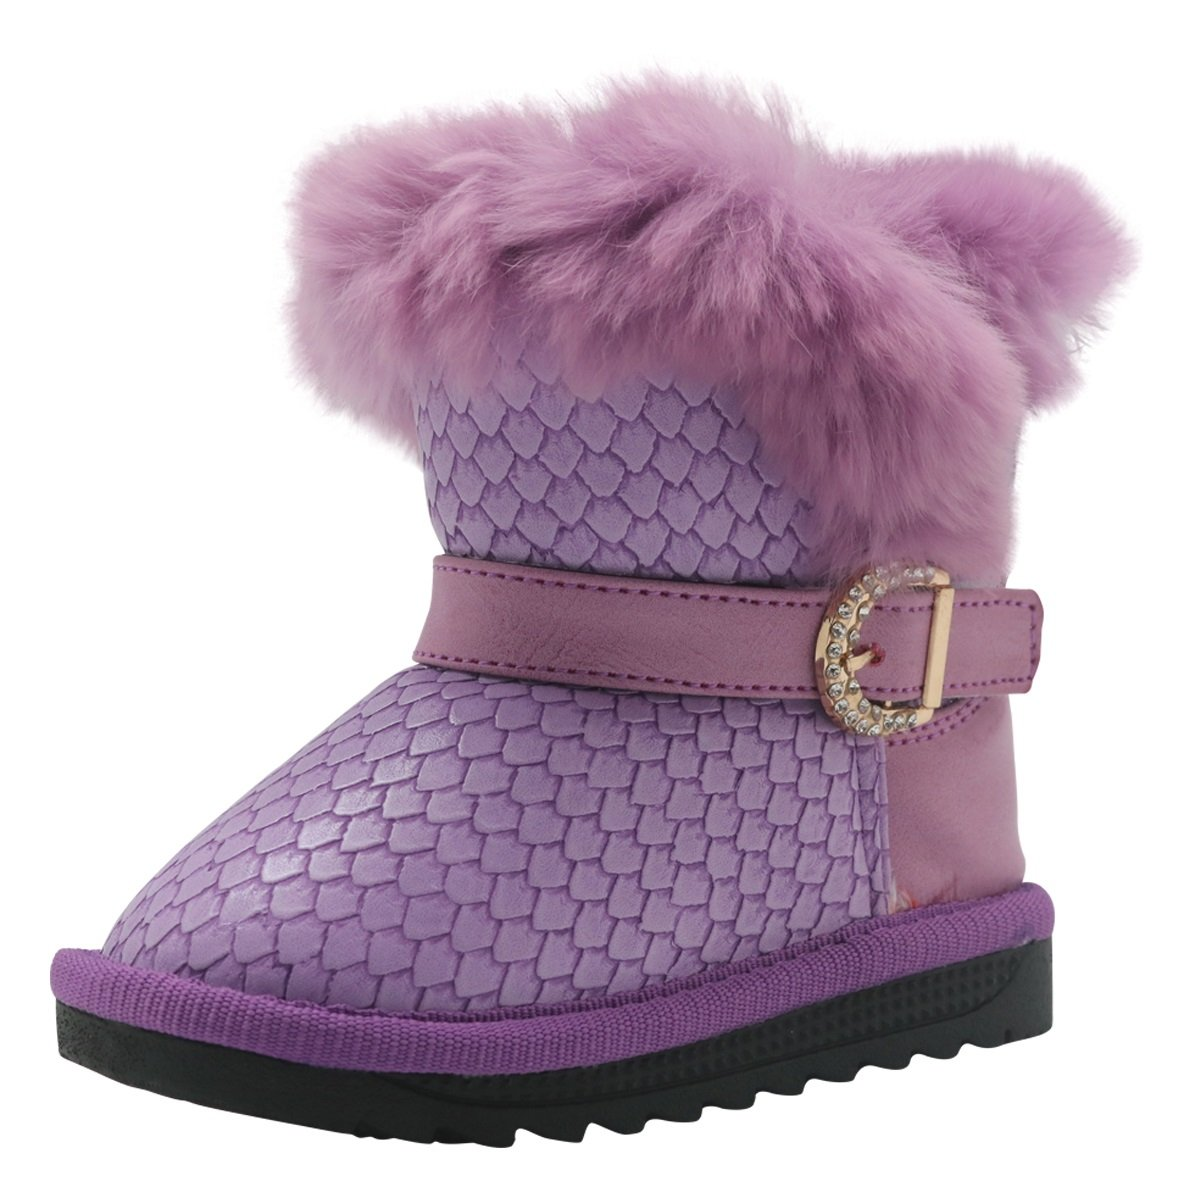 Non-Slip Toddler Shoes Girls Warm Winter Flat Shoes Snow Boots with Woolen Lining Durable Color : Purple , Size : 8 M US Toddler